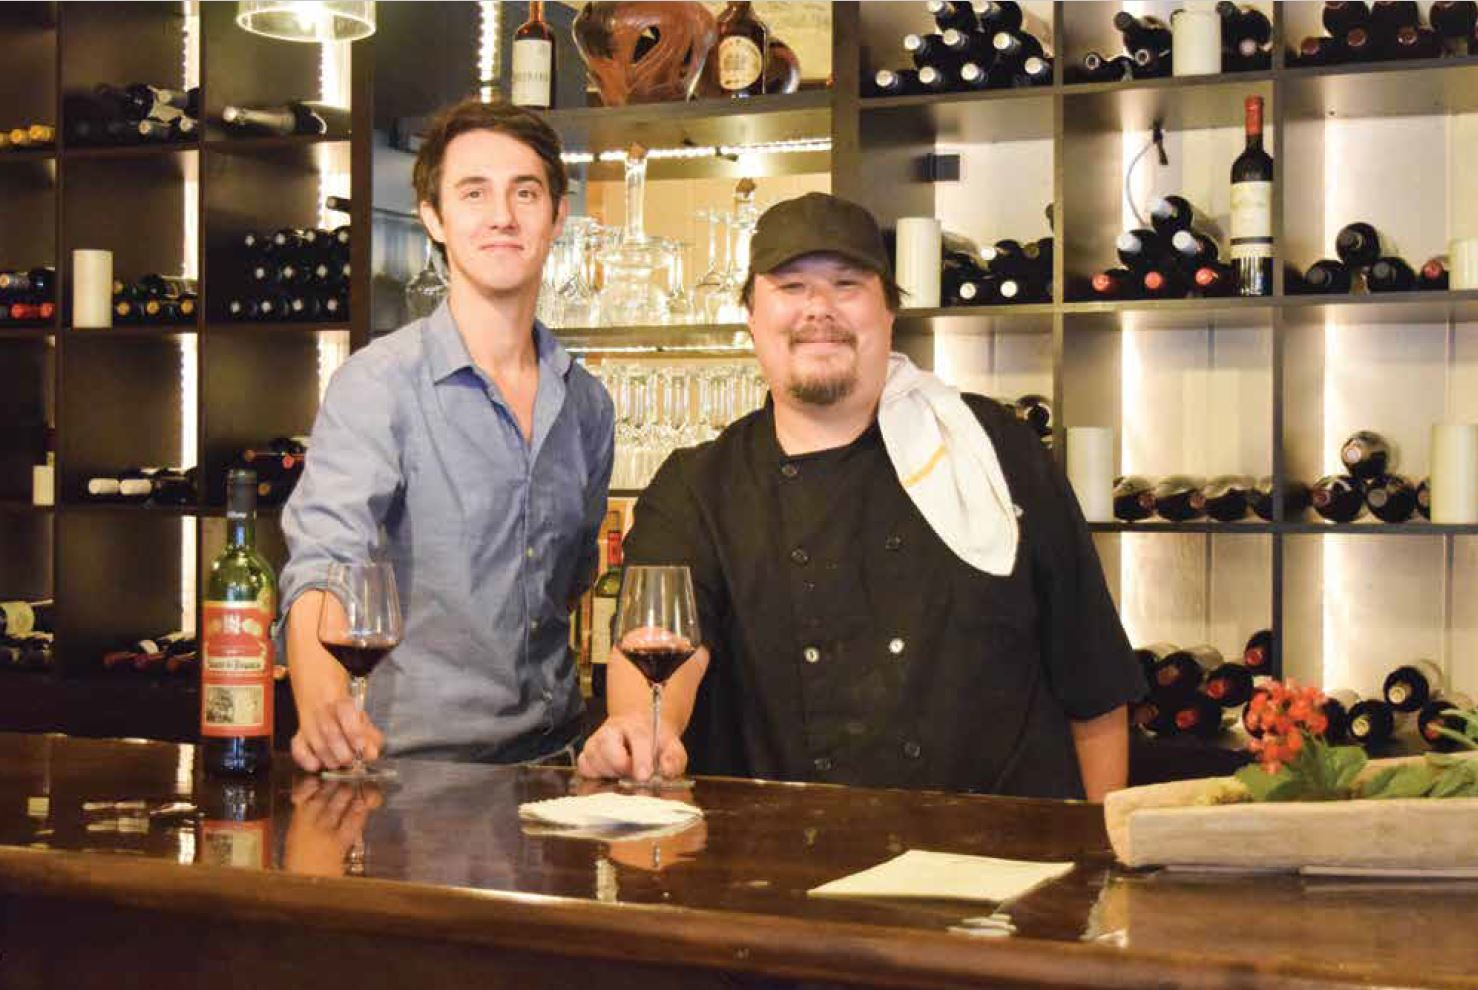 : Julien Lacaze and Chef Matthew Smith welcome guests to the Bord'ô's bar for tapas and fine wines.